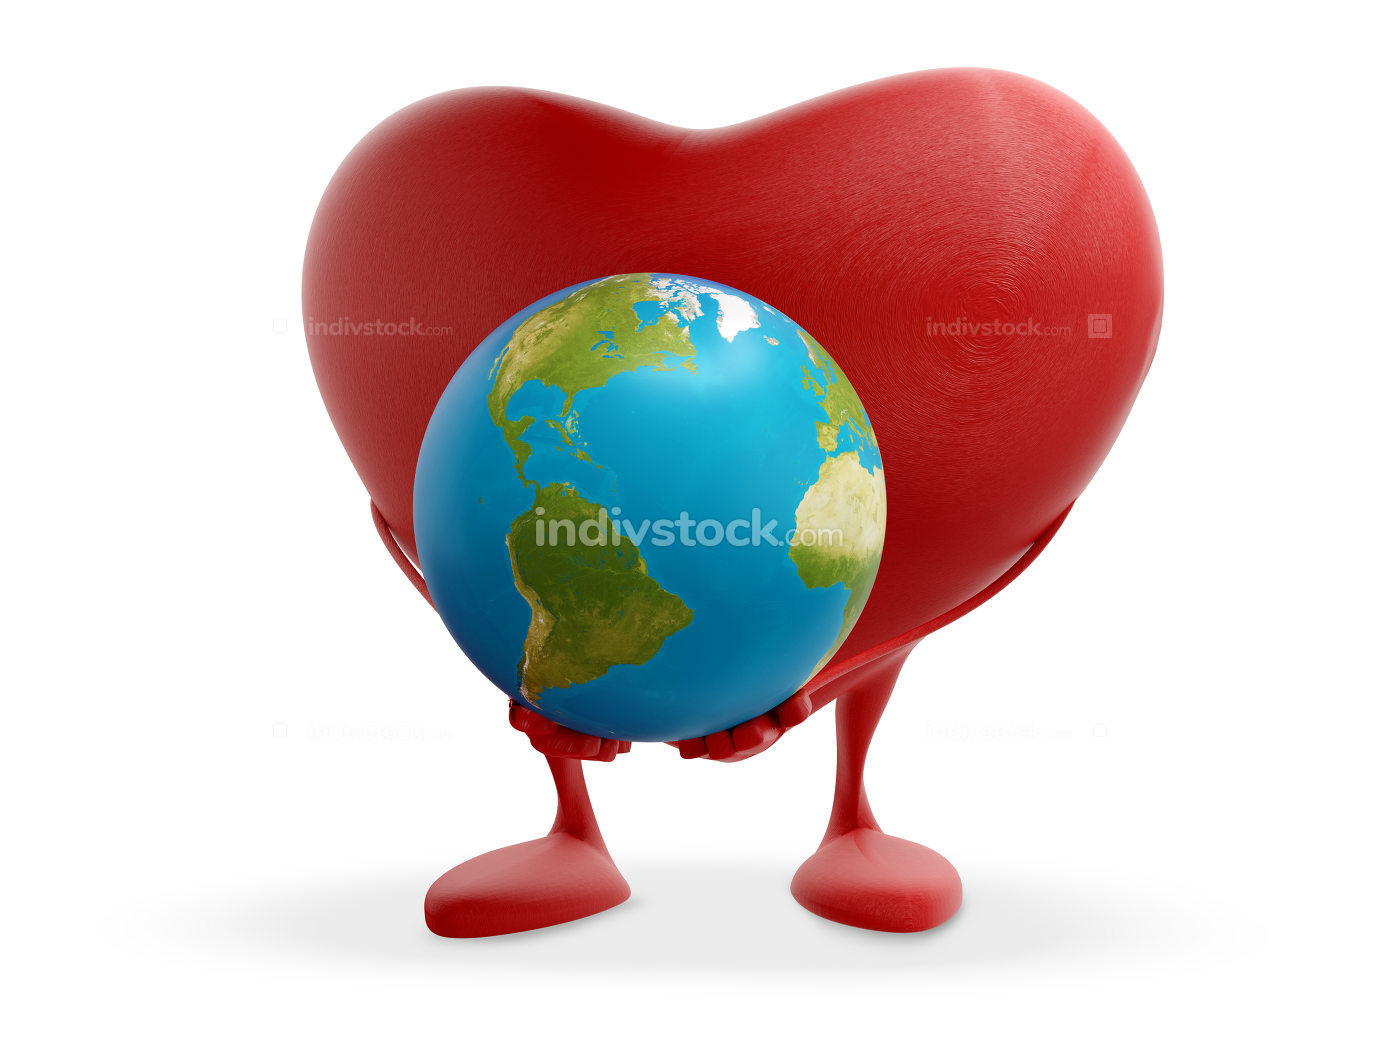 red heart holding planet earth globe 3d-illustration elements of this image furnished by NASA